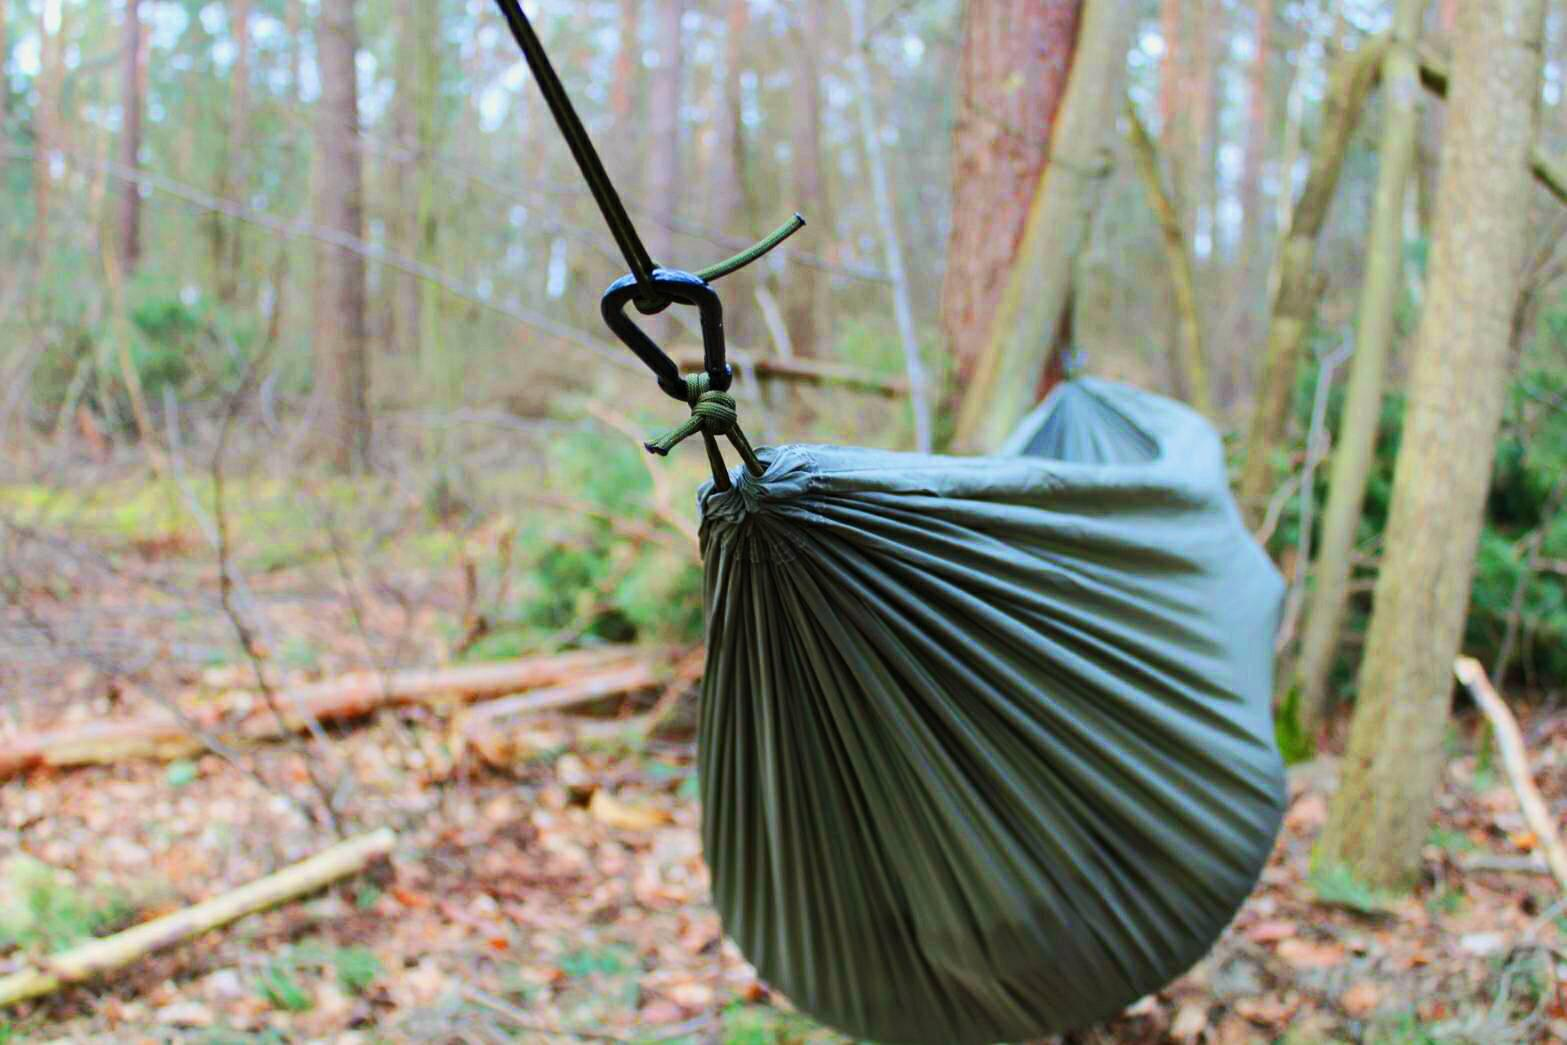 REVIEW: Snugpak Tropical Hammock